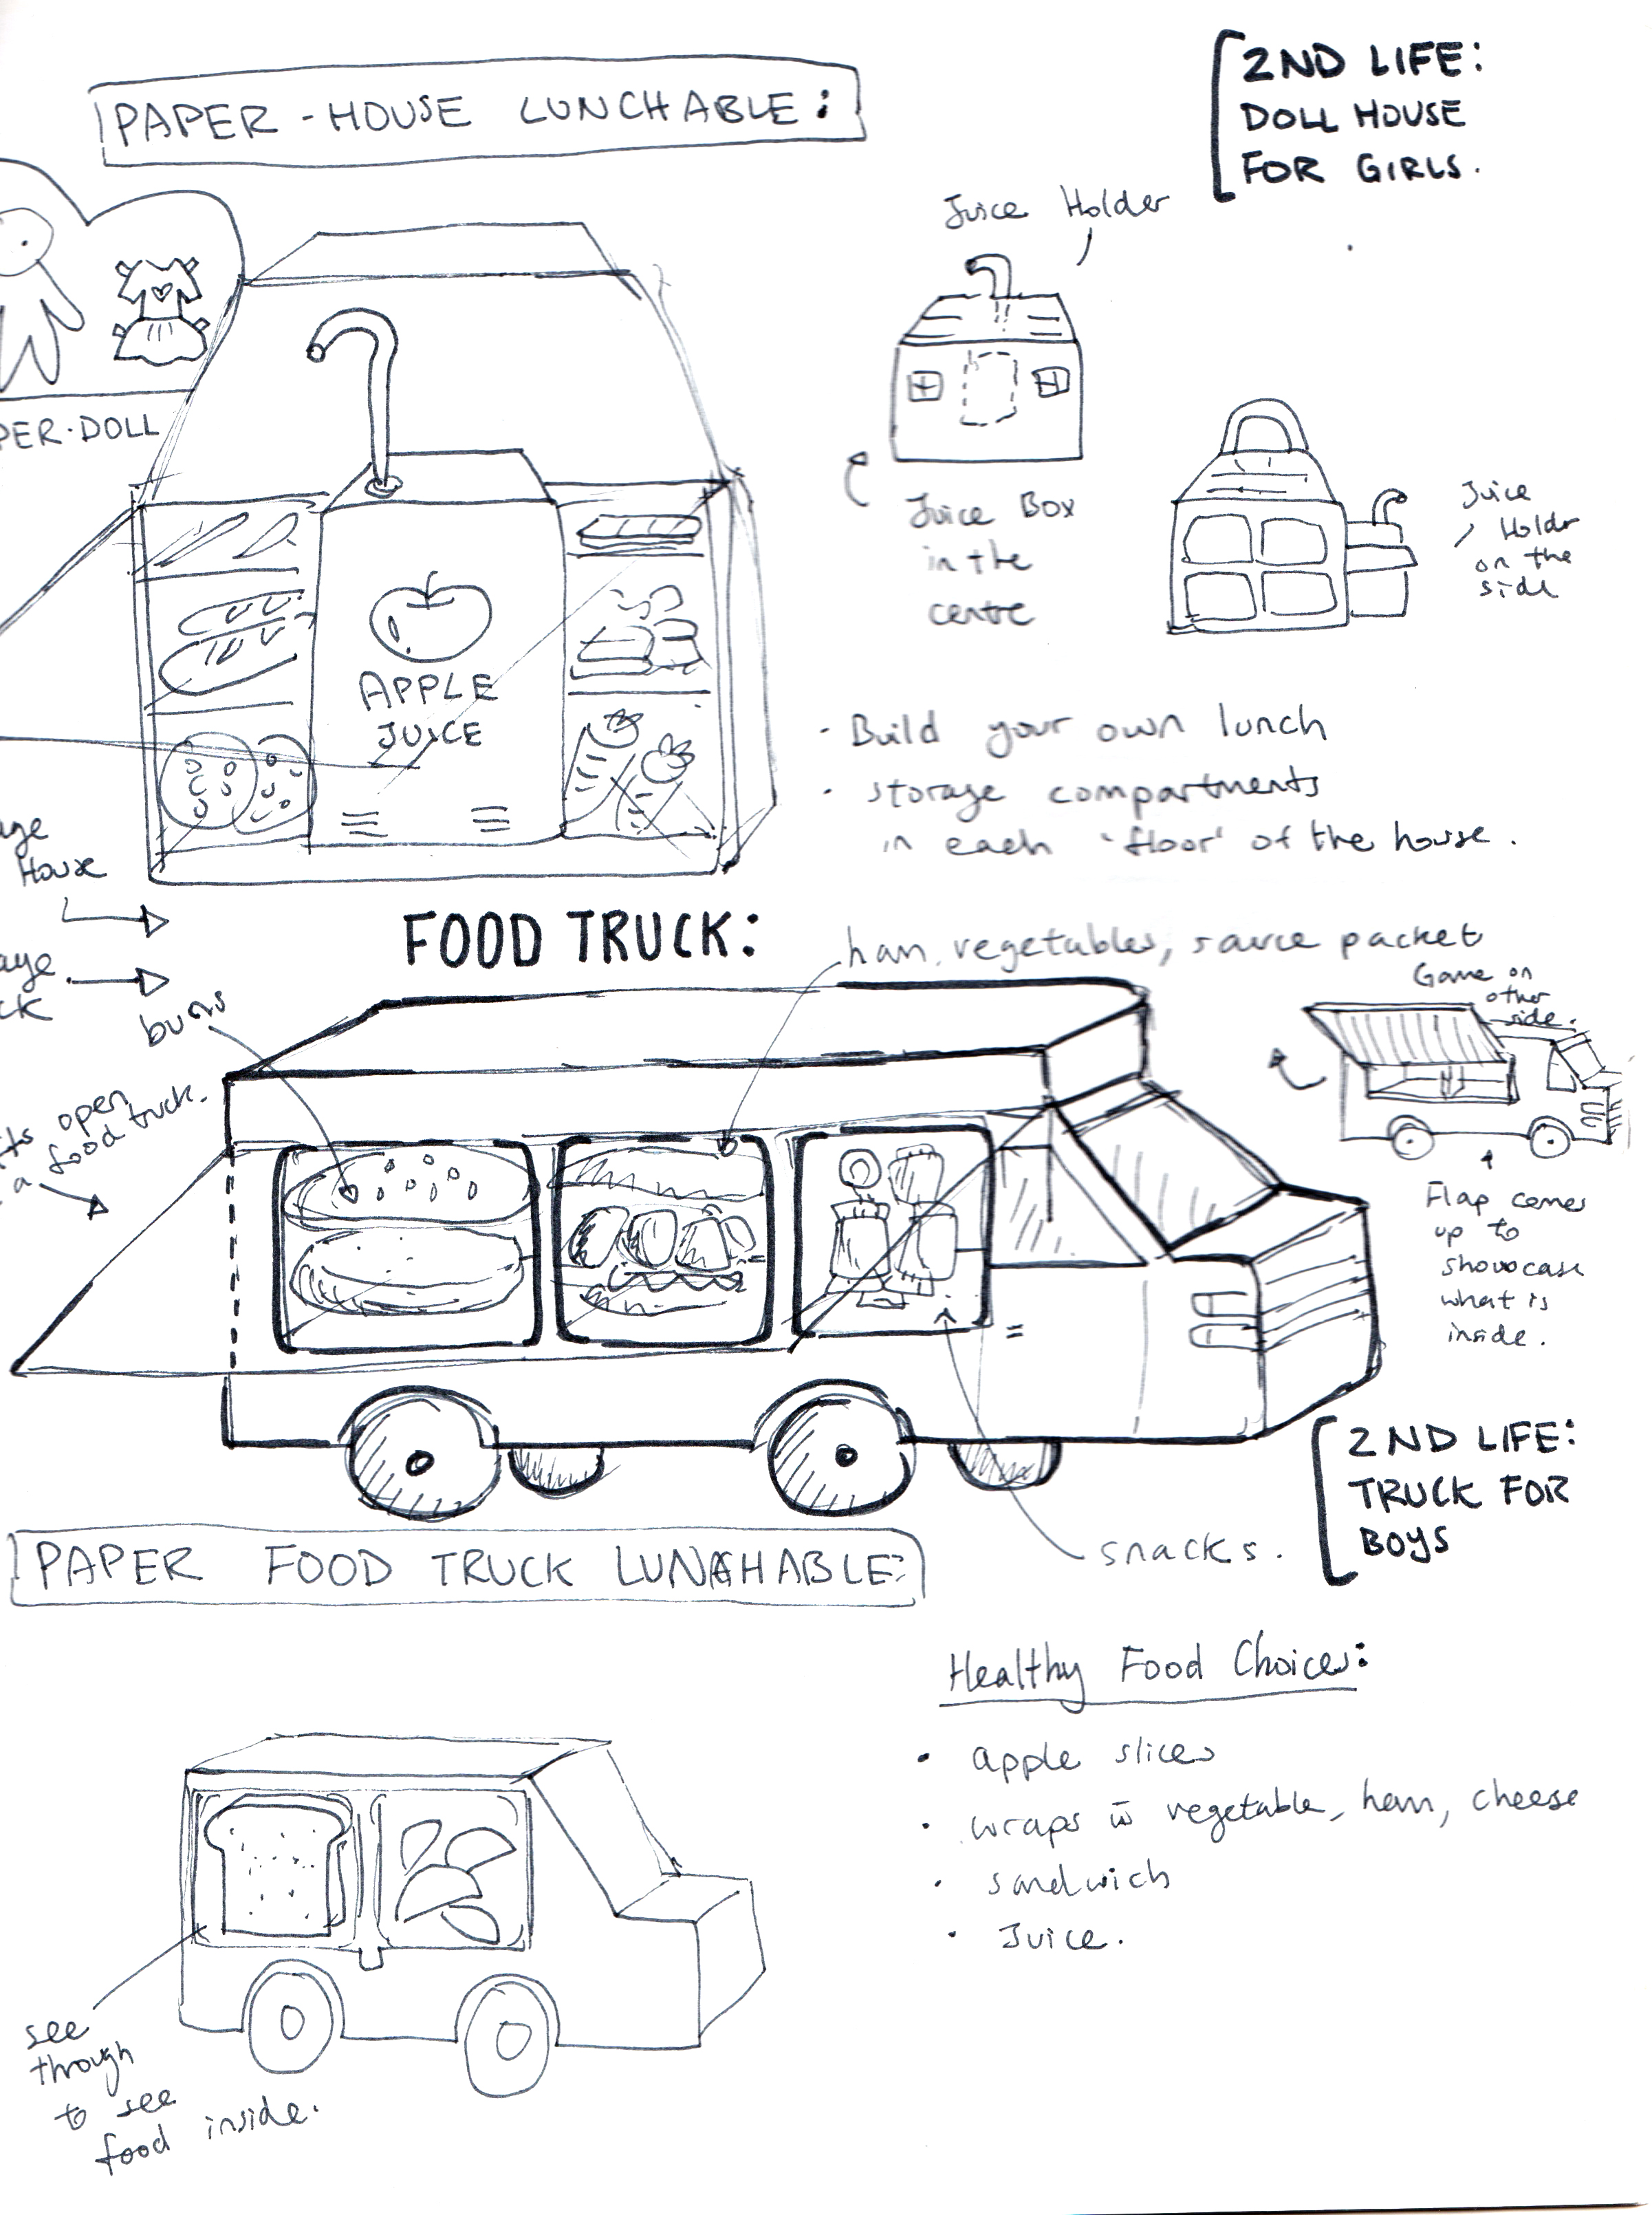 foodtruck.jpeg